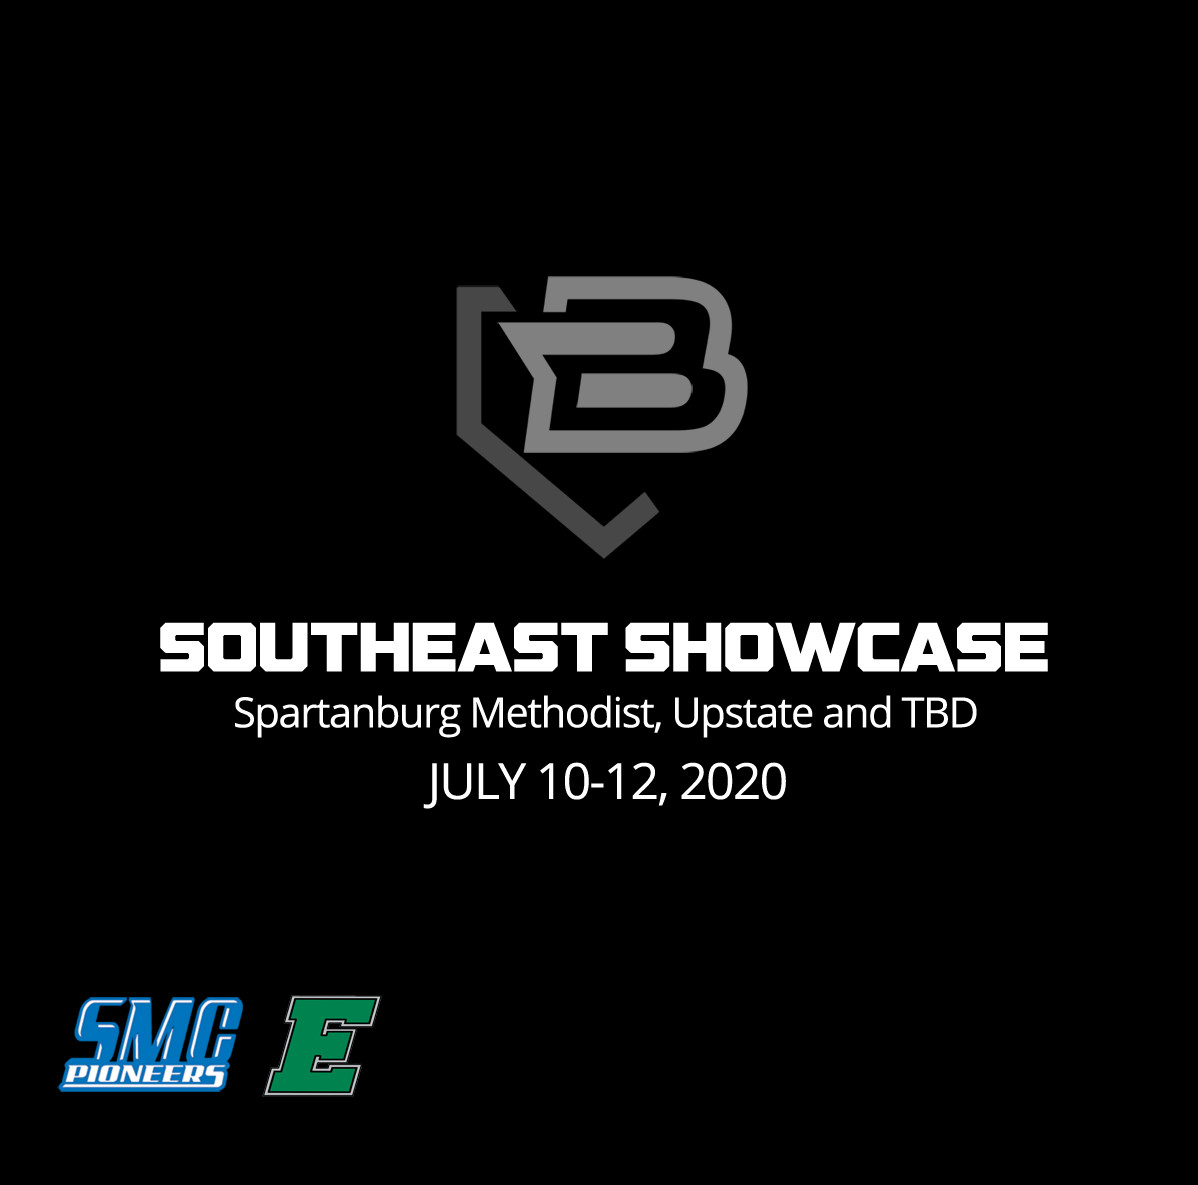 Southeast Showcase v2.0